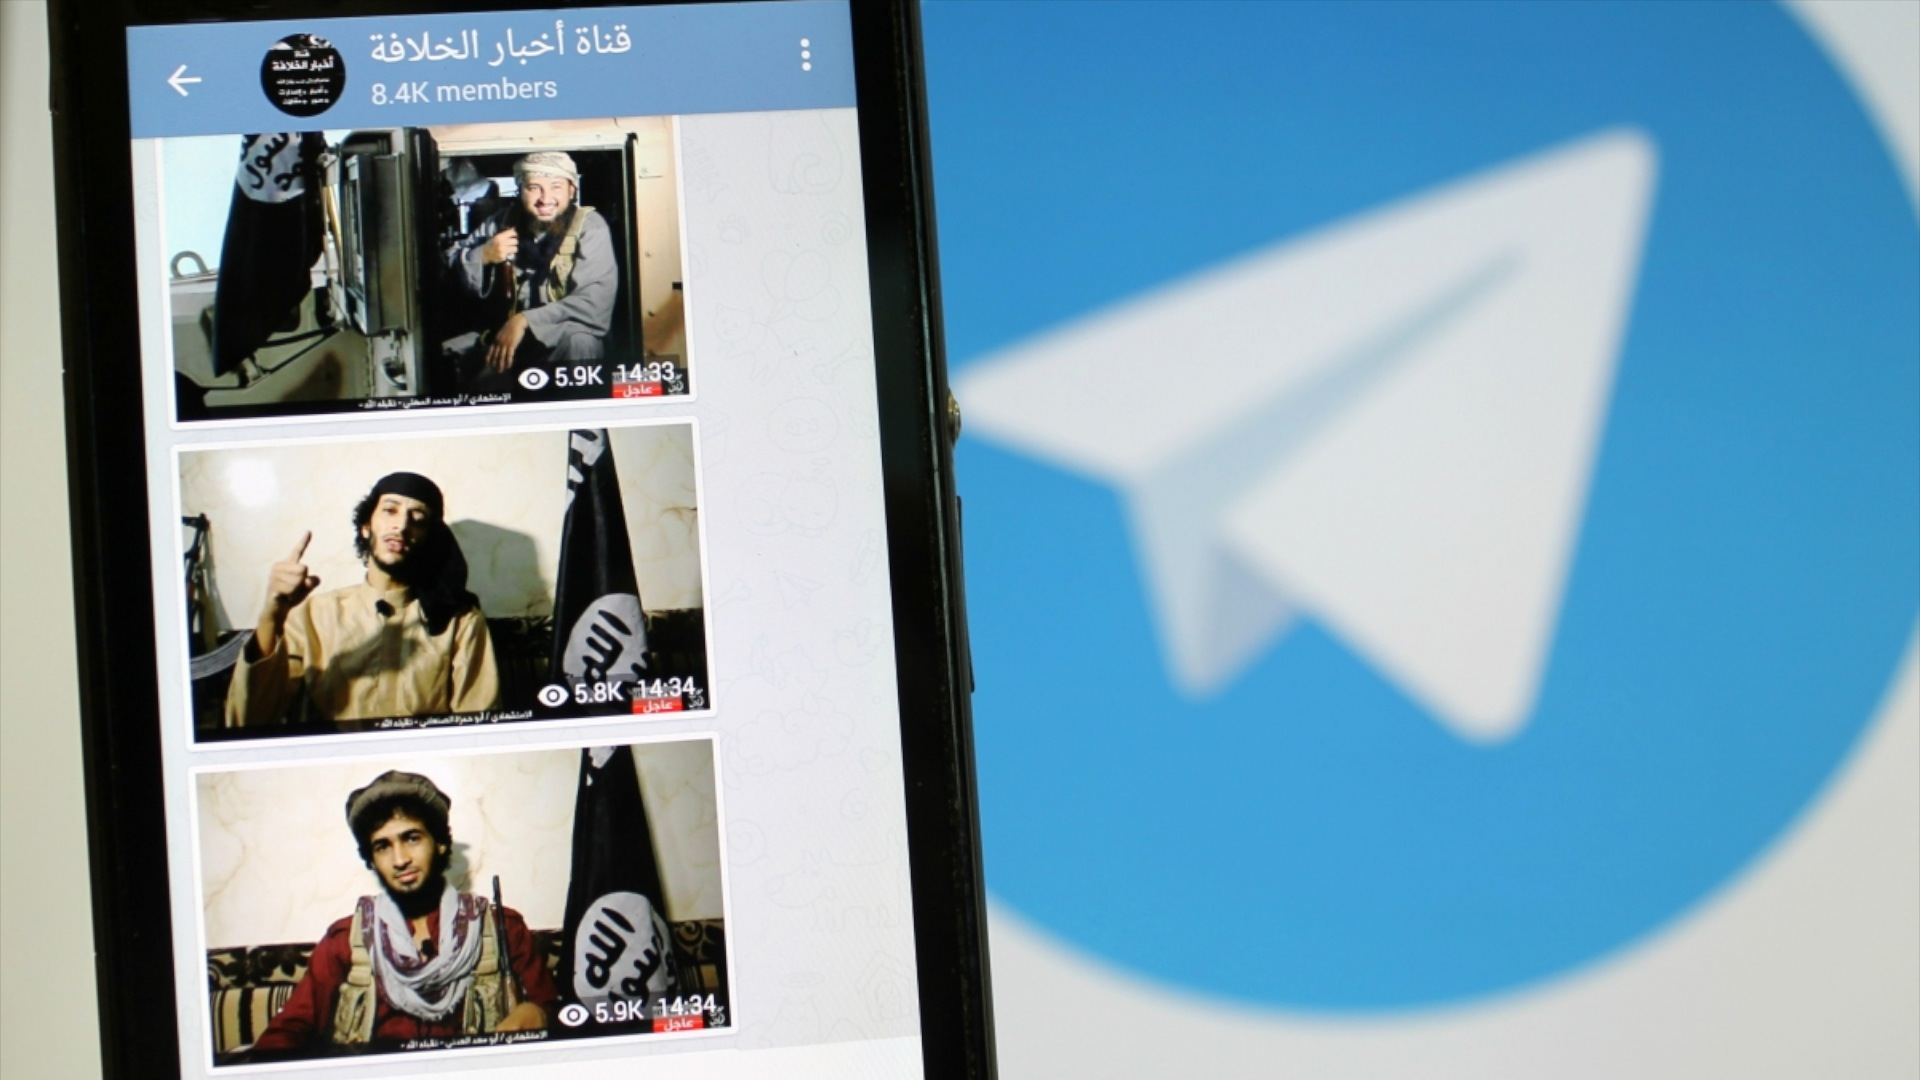 The 'app of choice' for jihadists: ISIS seizes on Internet tool to promote terror